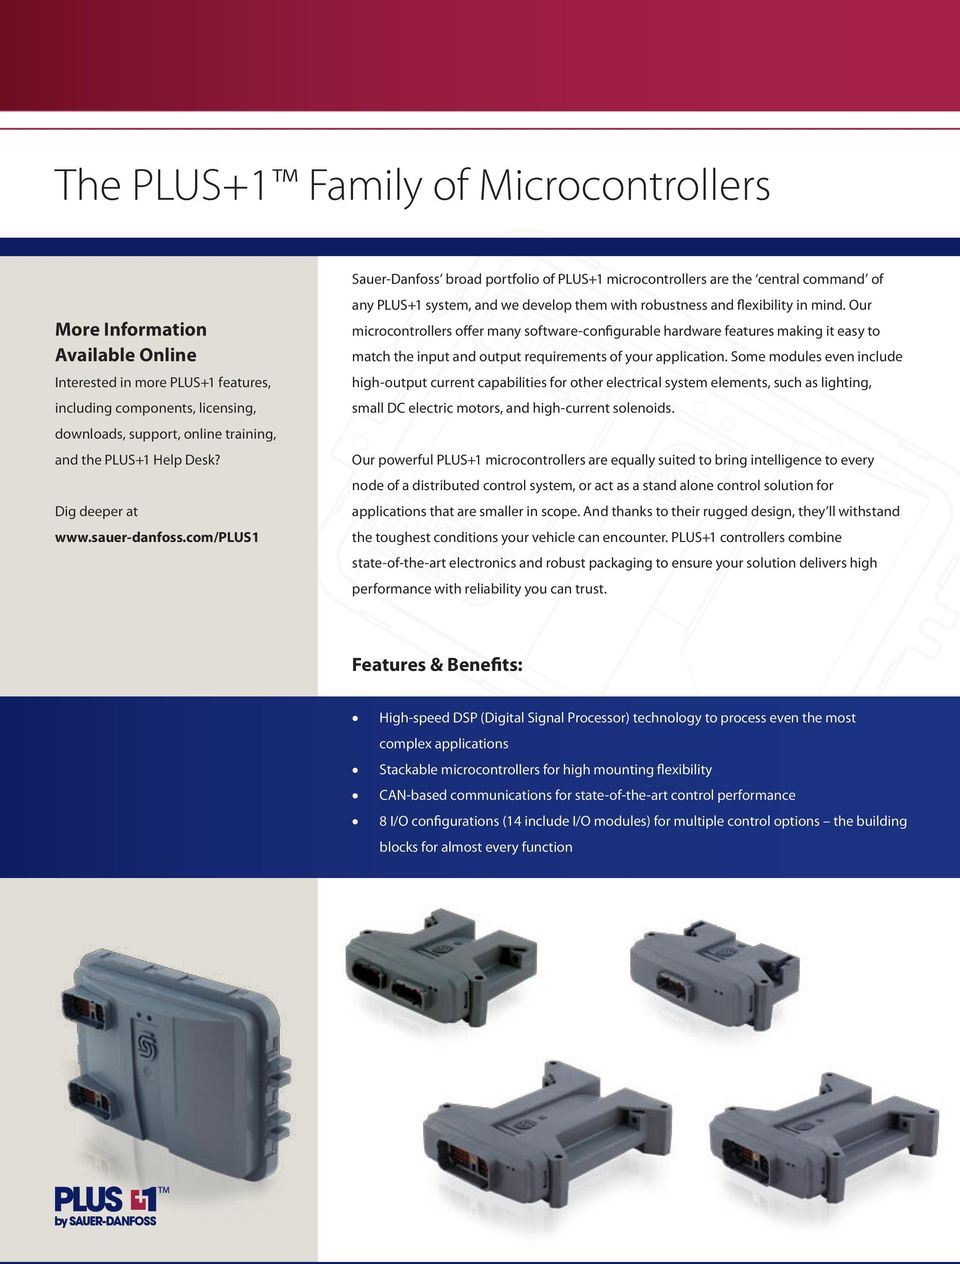 com/plus1 Sauer-Danfoss broad portfolio of PLUS+1 microcontrollers are the central command of any PLUS+1 system, and we develop them with robustness and flexibility in mind.